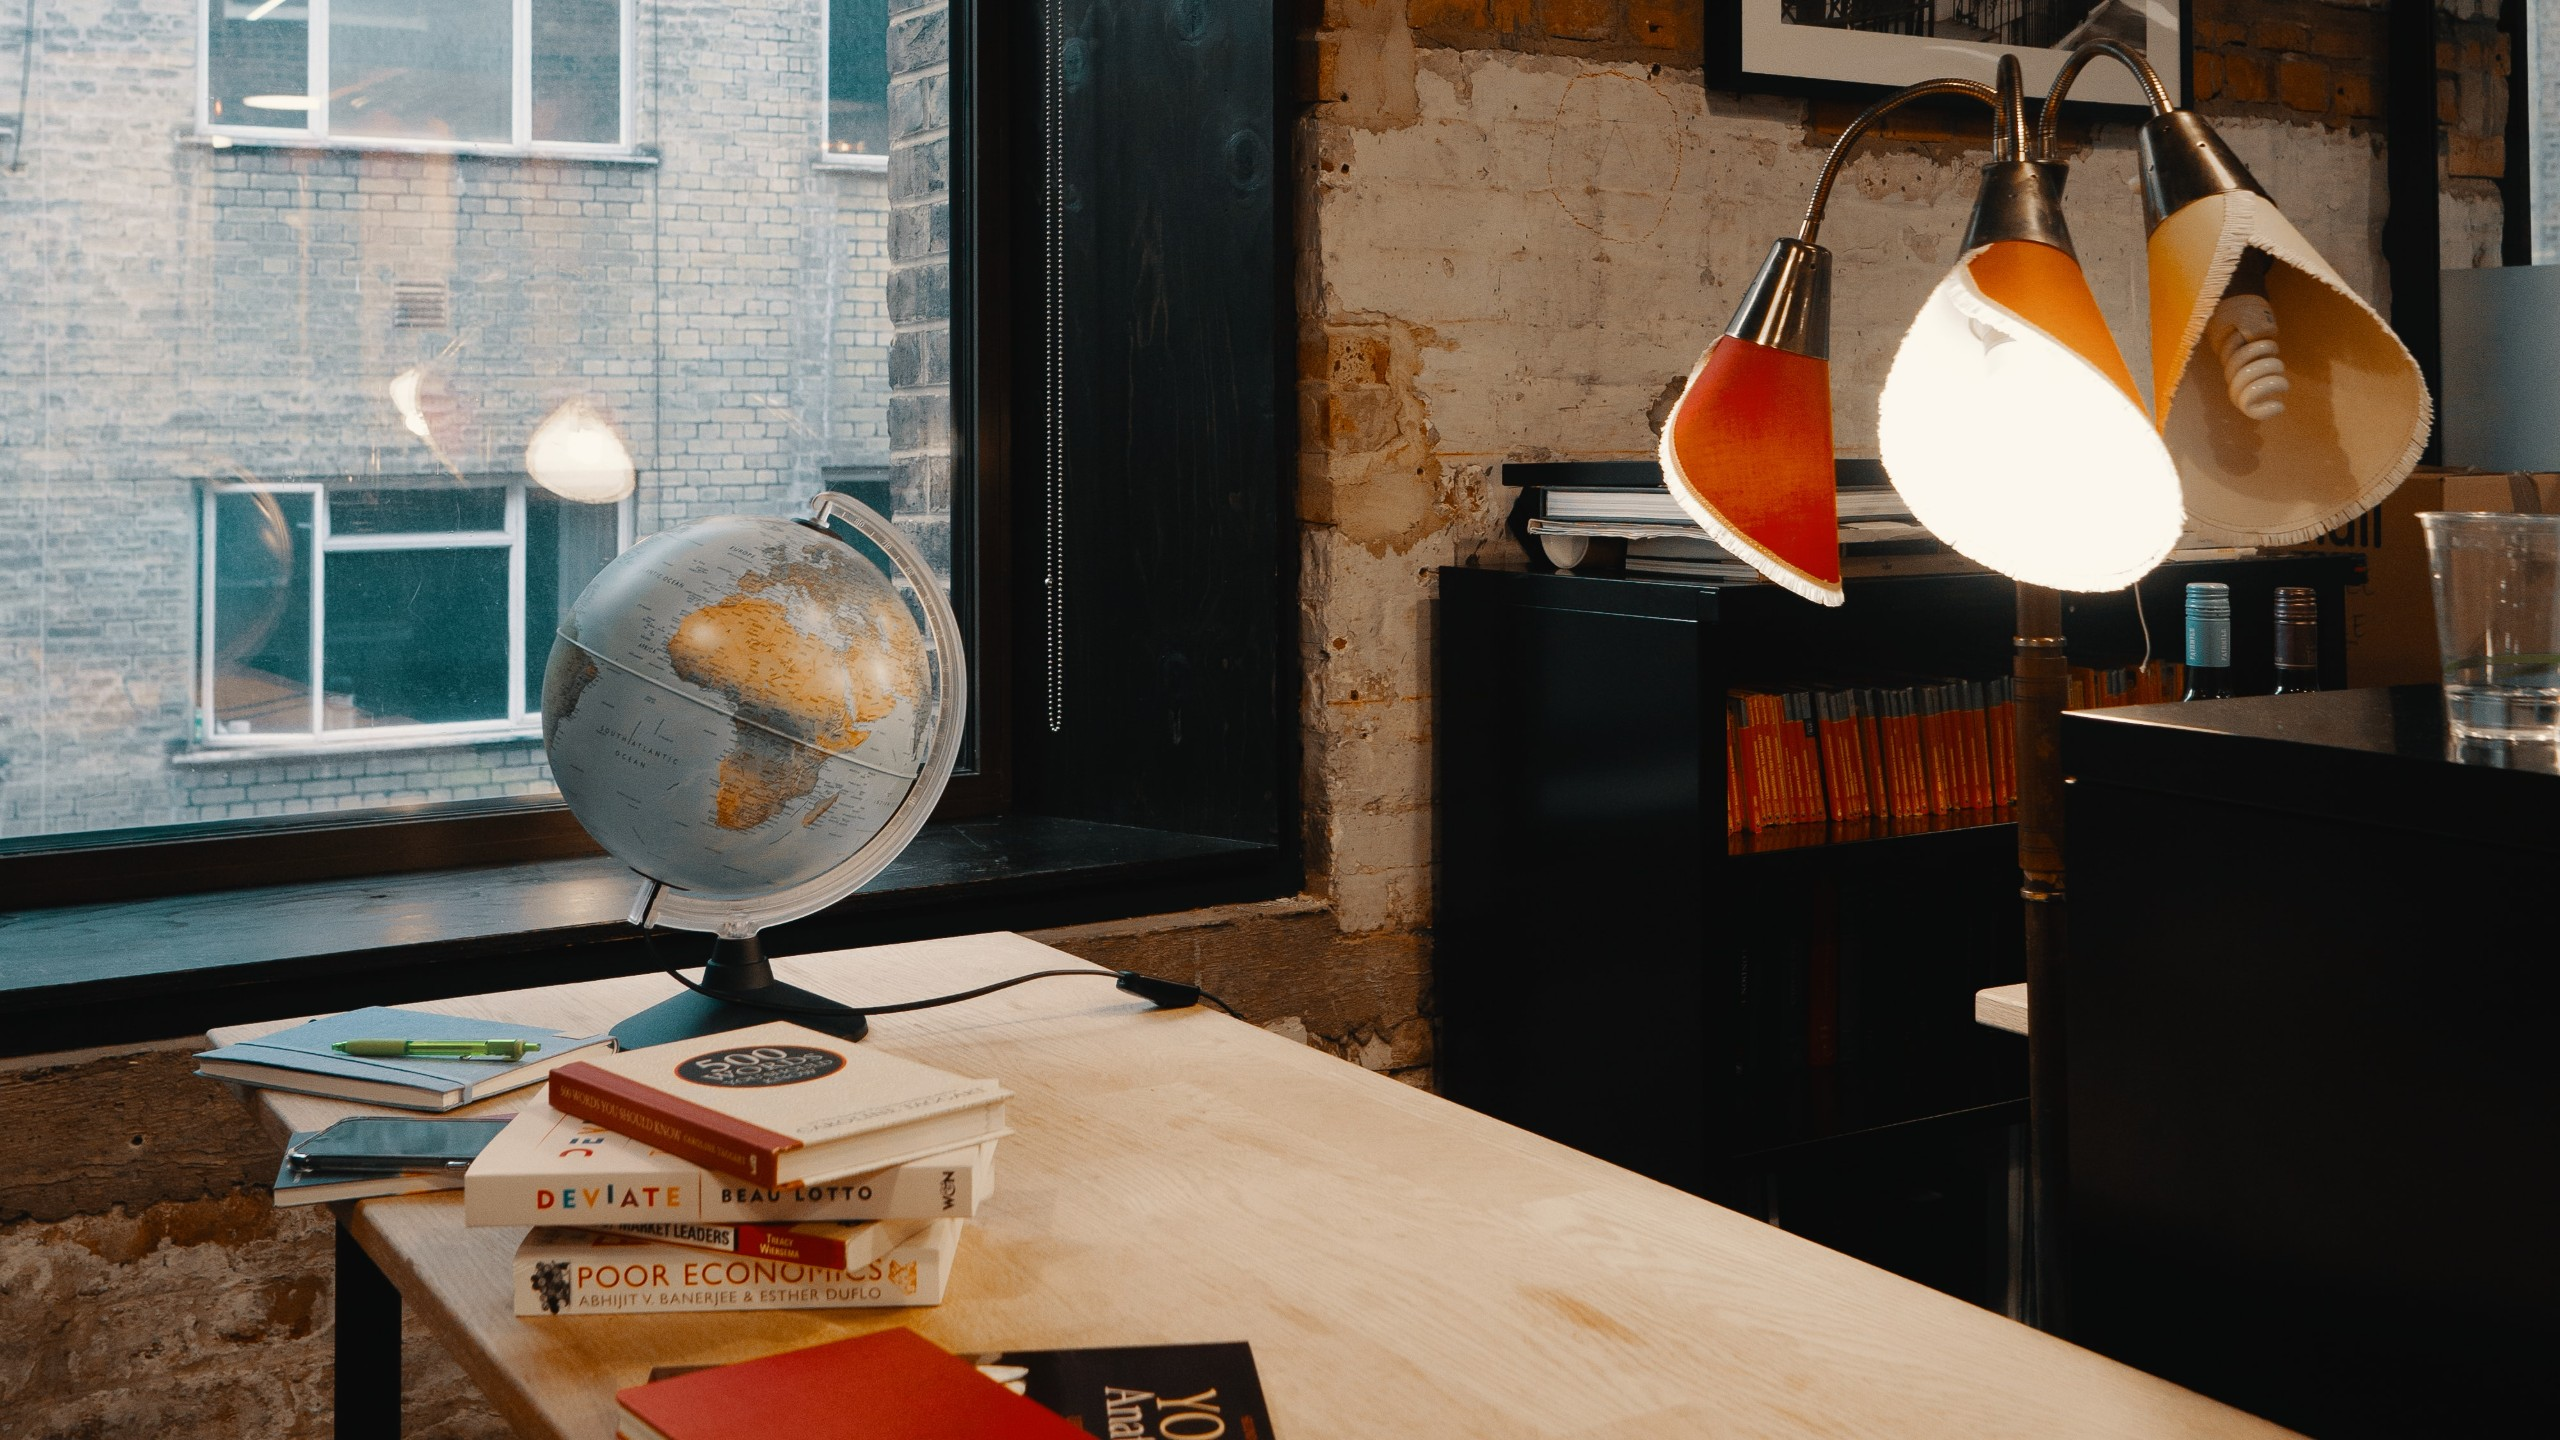 a globe and text books on a table